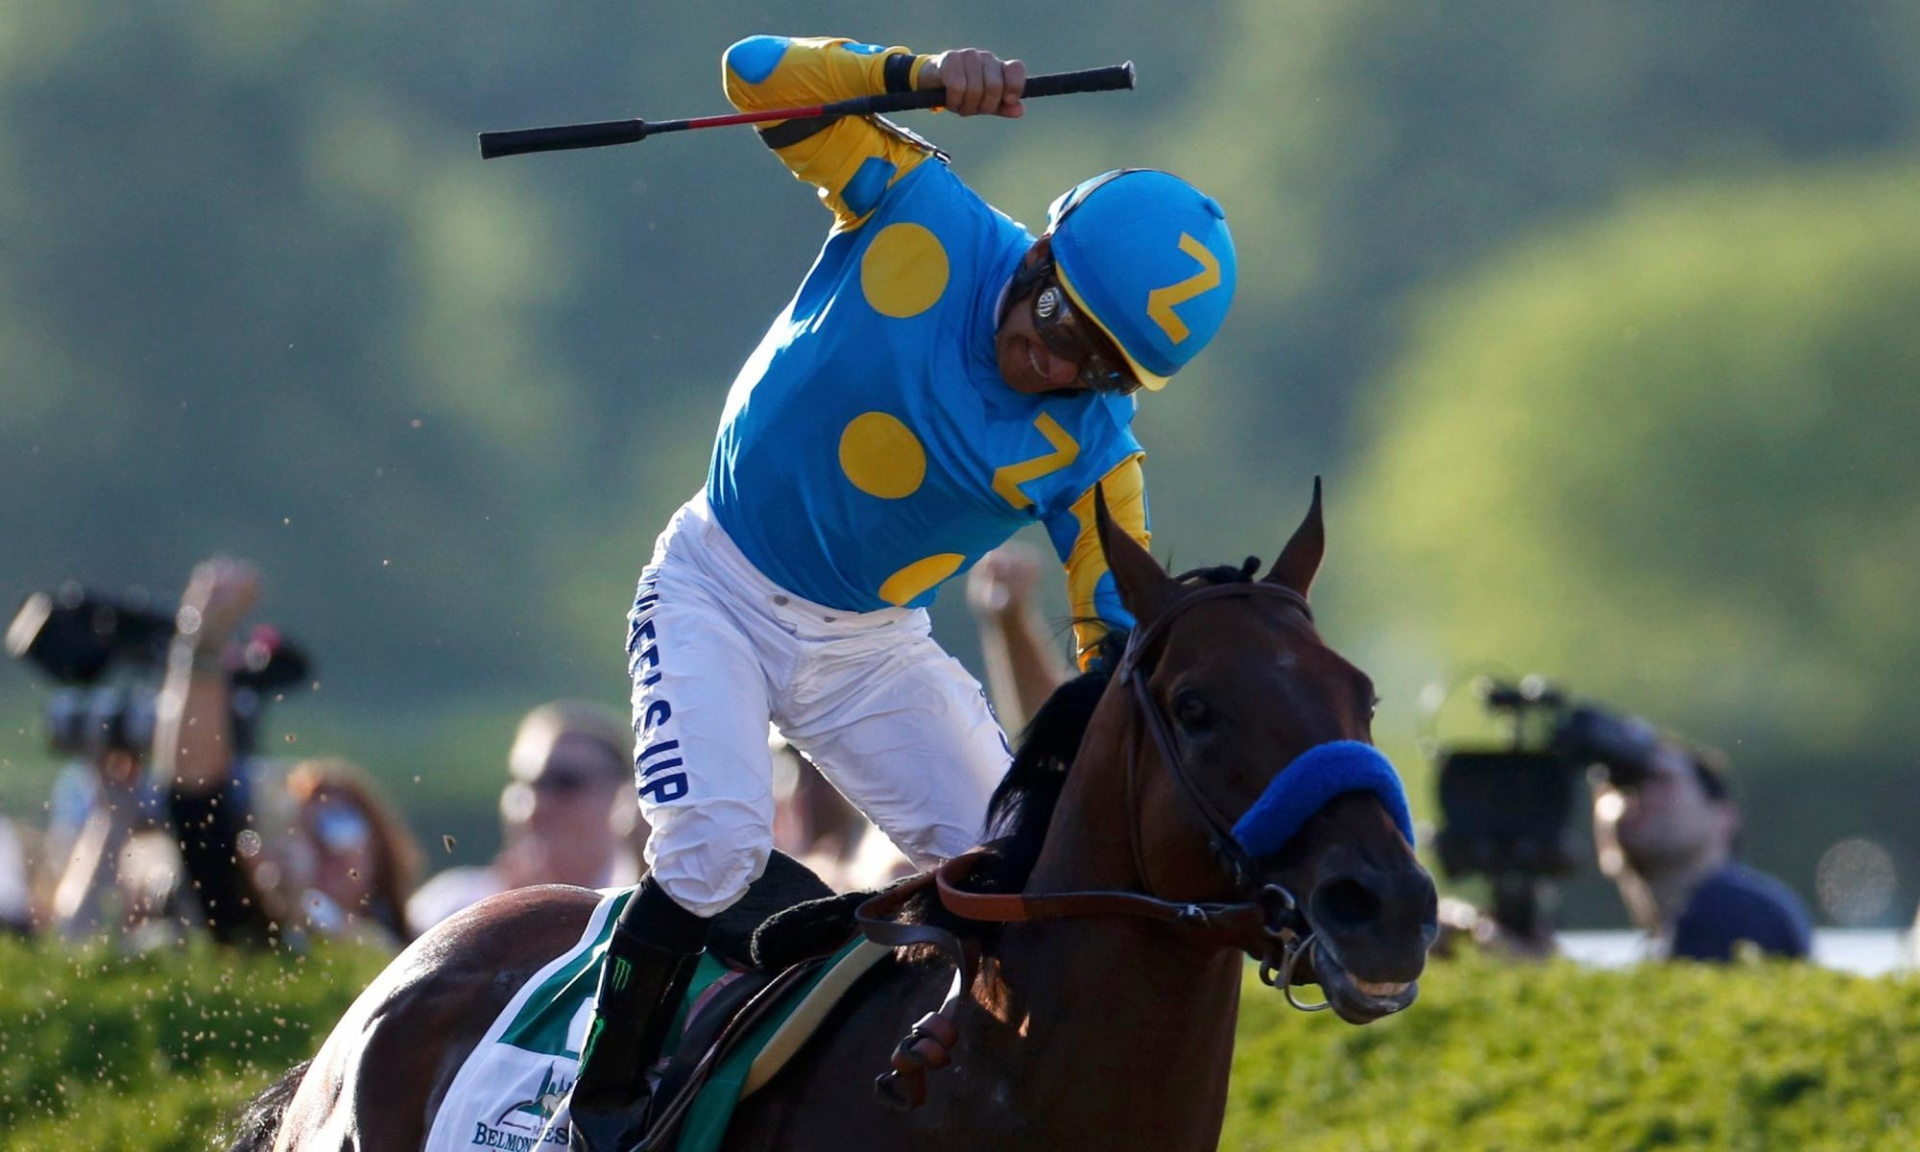 Horse Times Egypt: Equestrian Magazine :News :AMERICAN PHAROAH BECOMES FIRST TRIPLE CROWN WINNER IN 37 YEARS.